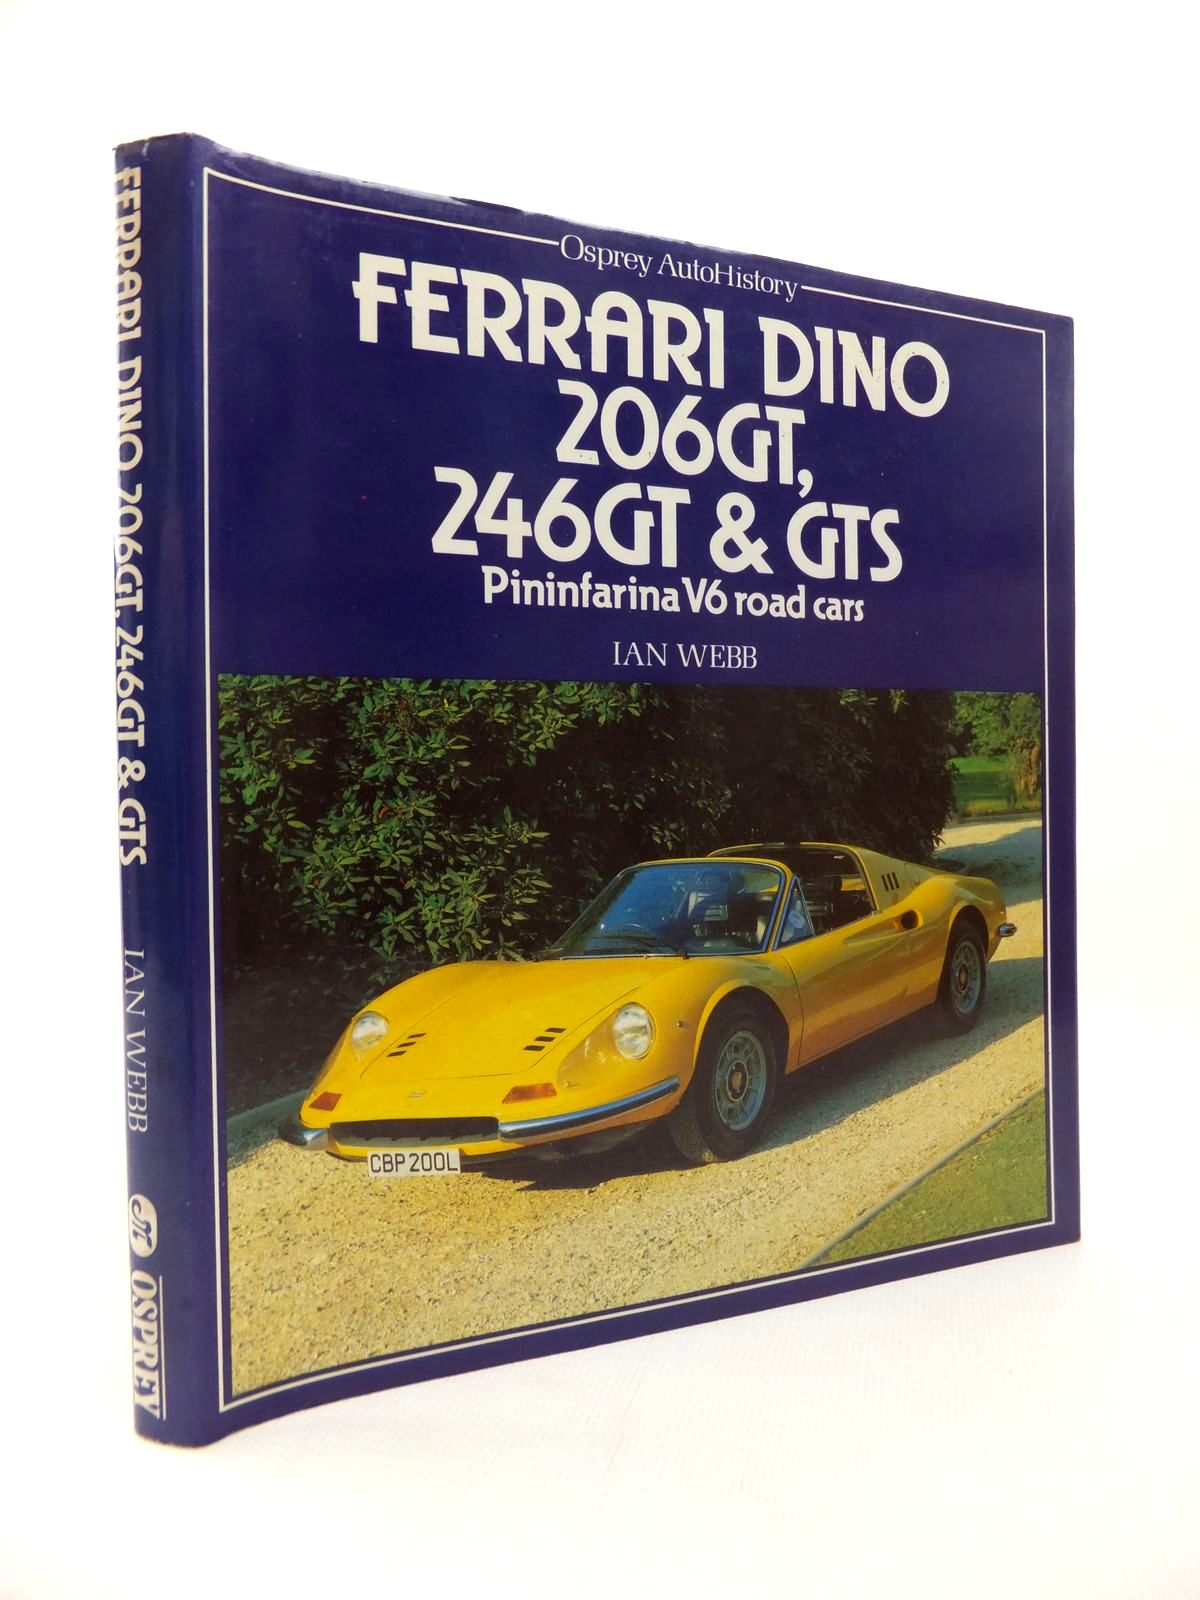 Photo of FERRARI DINO  206GT, 246GT & GTS PININFARINA V6 ROAD CARS (OSPREY AUTOHISTORY) written by Webb, Ian published by Osprey Publishing (STOCK CODE: 1814486)  for sale by Stella & Rose's Books